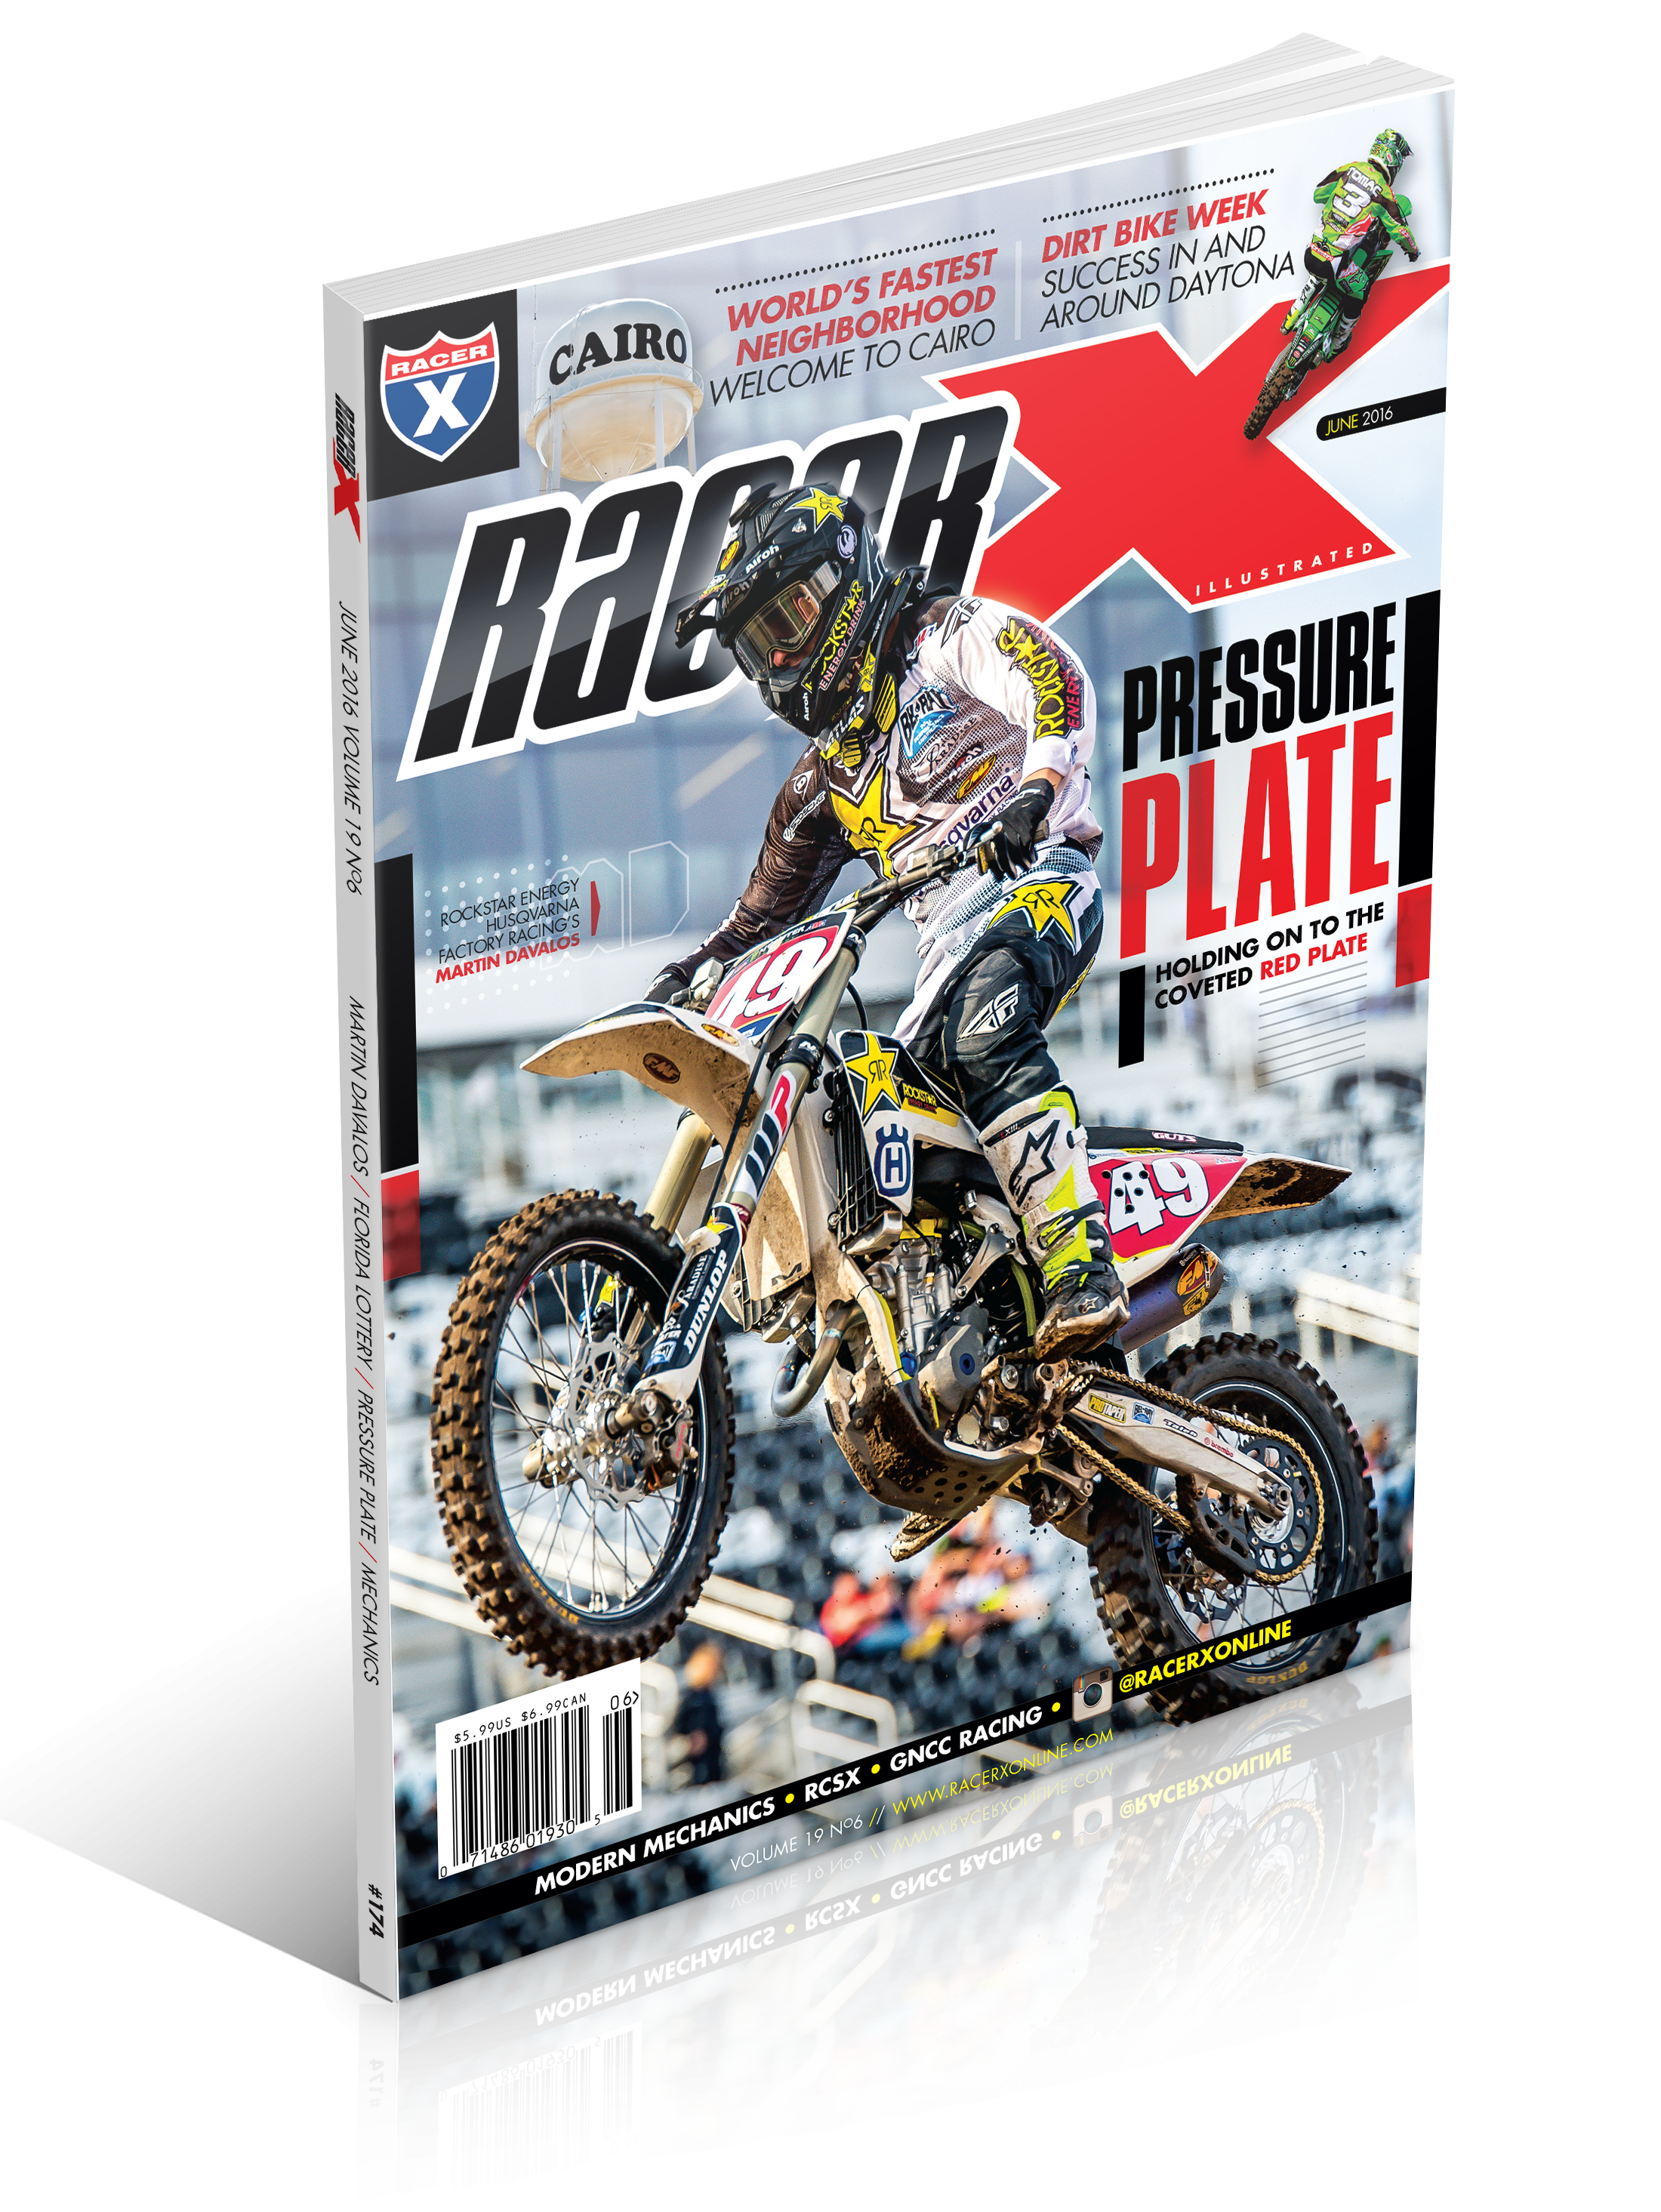 The June 2016 Issue - Racer X Illustrated Motocross Magazine